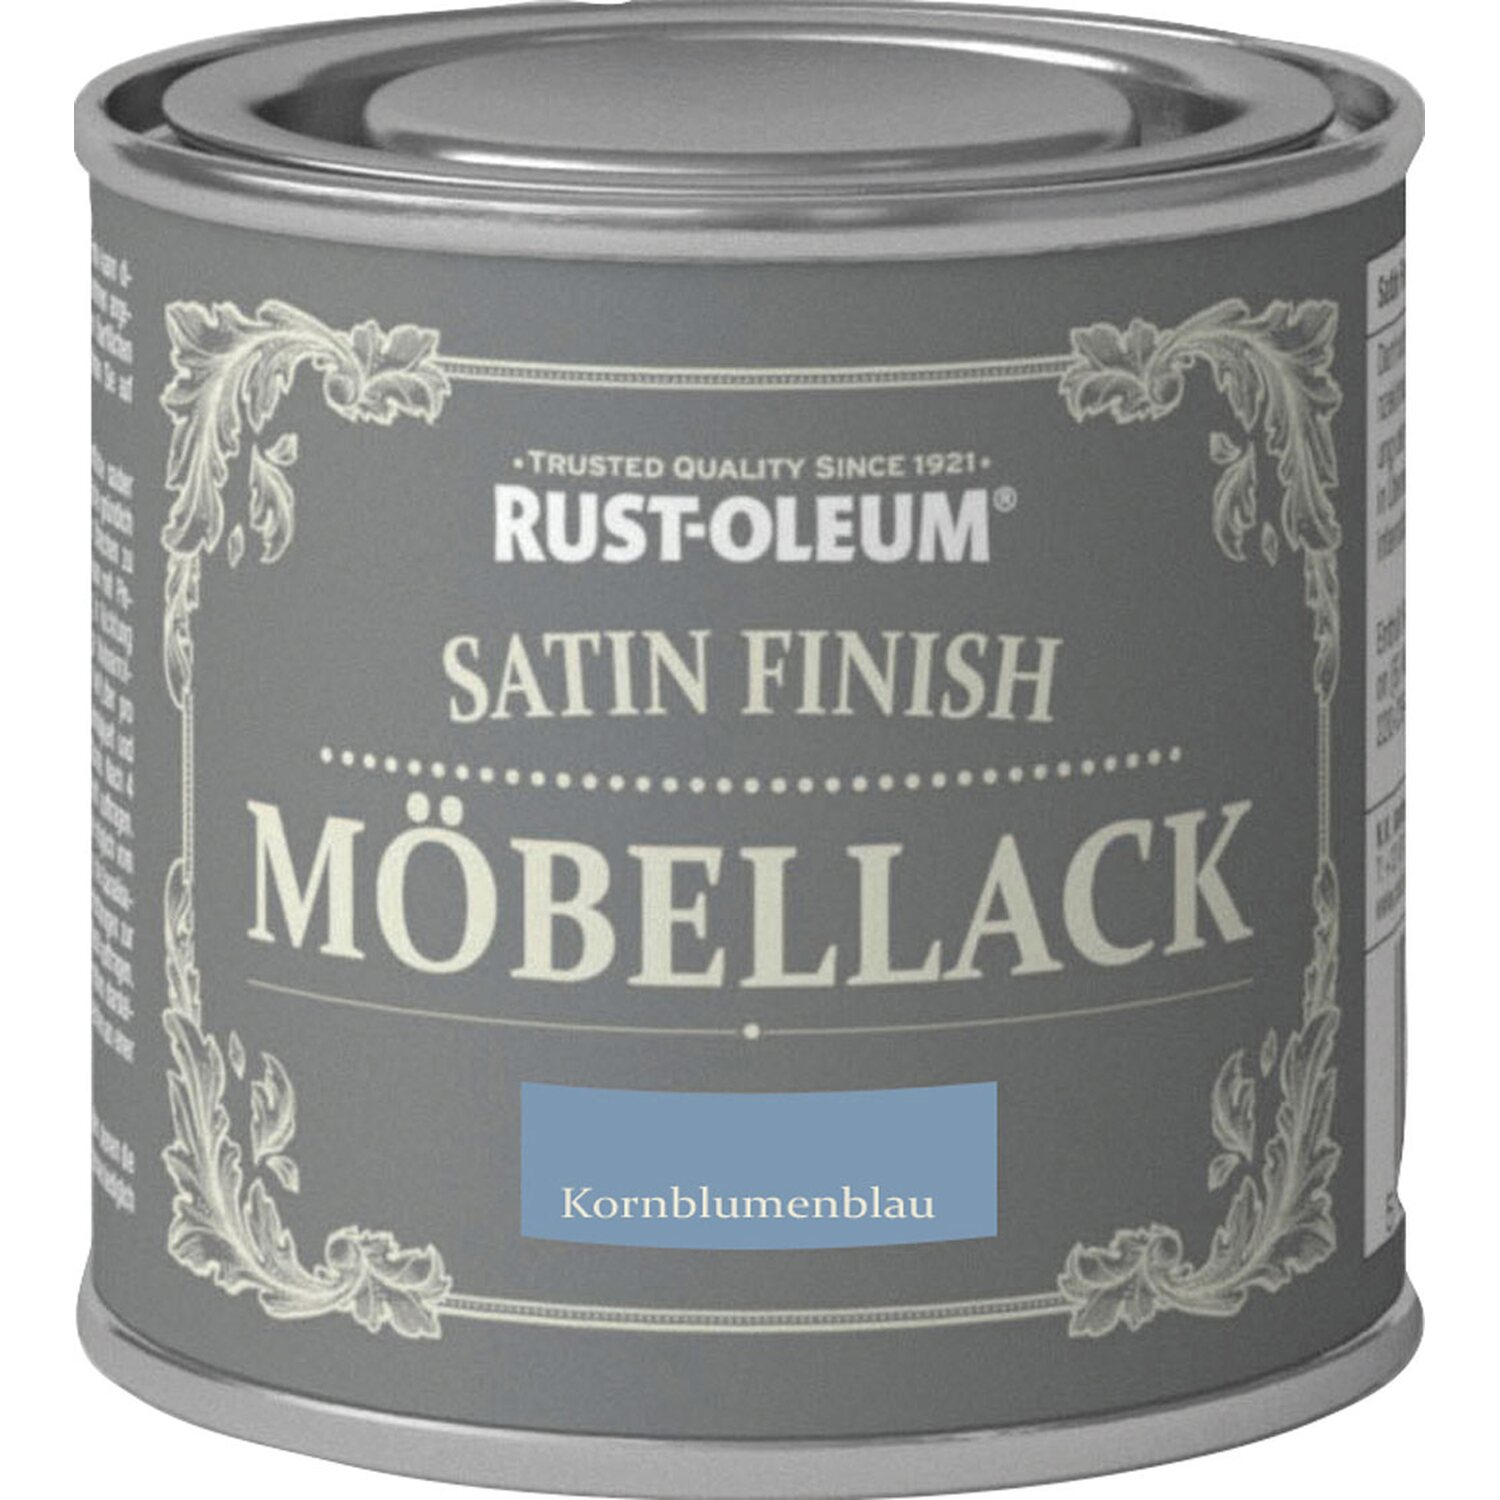 rust oleum kreidefarbe m bellack satin finish. Black Bedroom Furniture Sets. Home Design Ideas